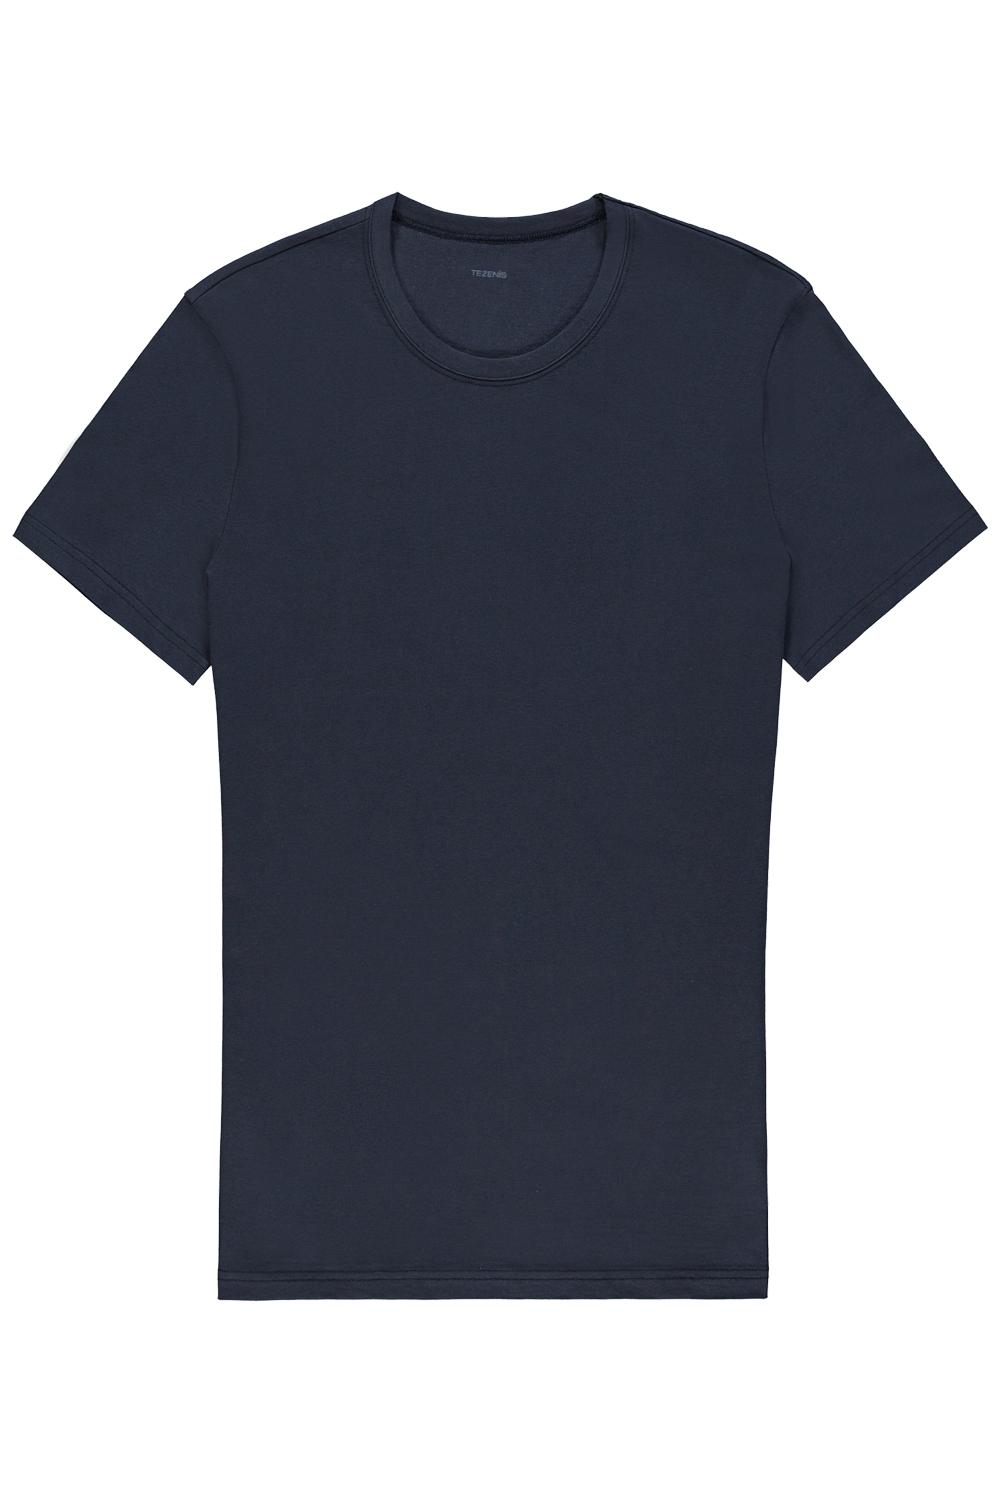 Short-Sleeve Round-Neck Cotton-Jersey T-shirt